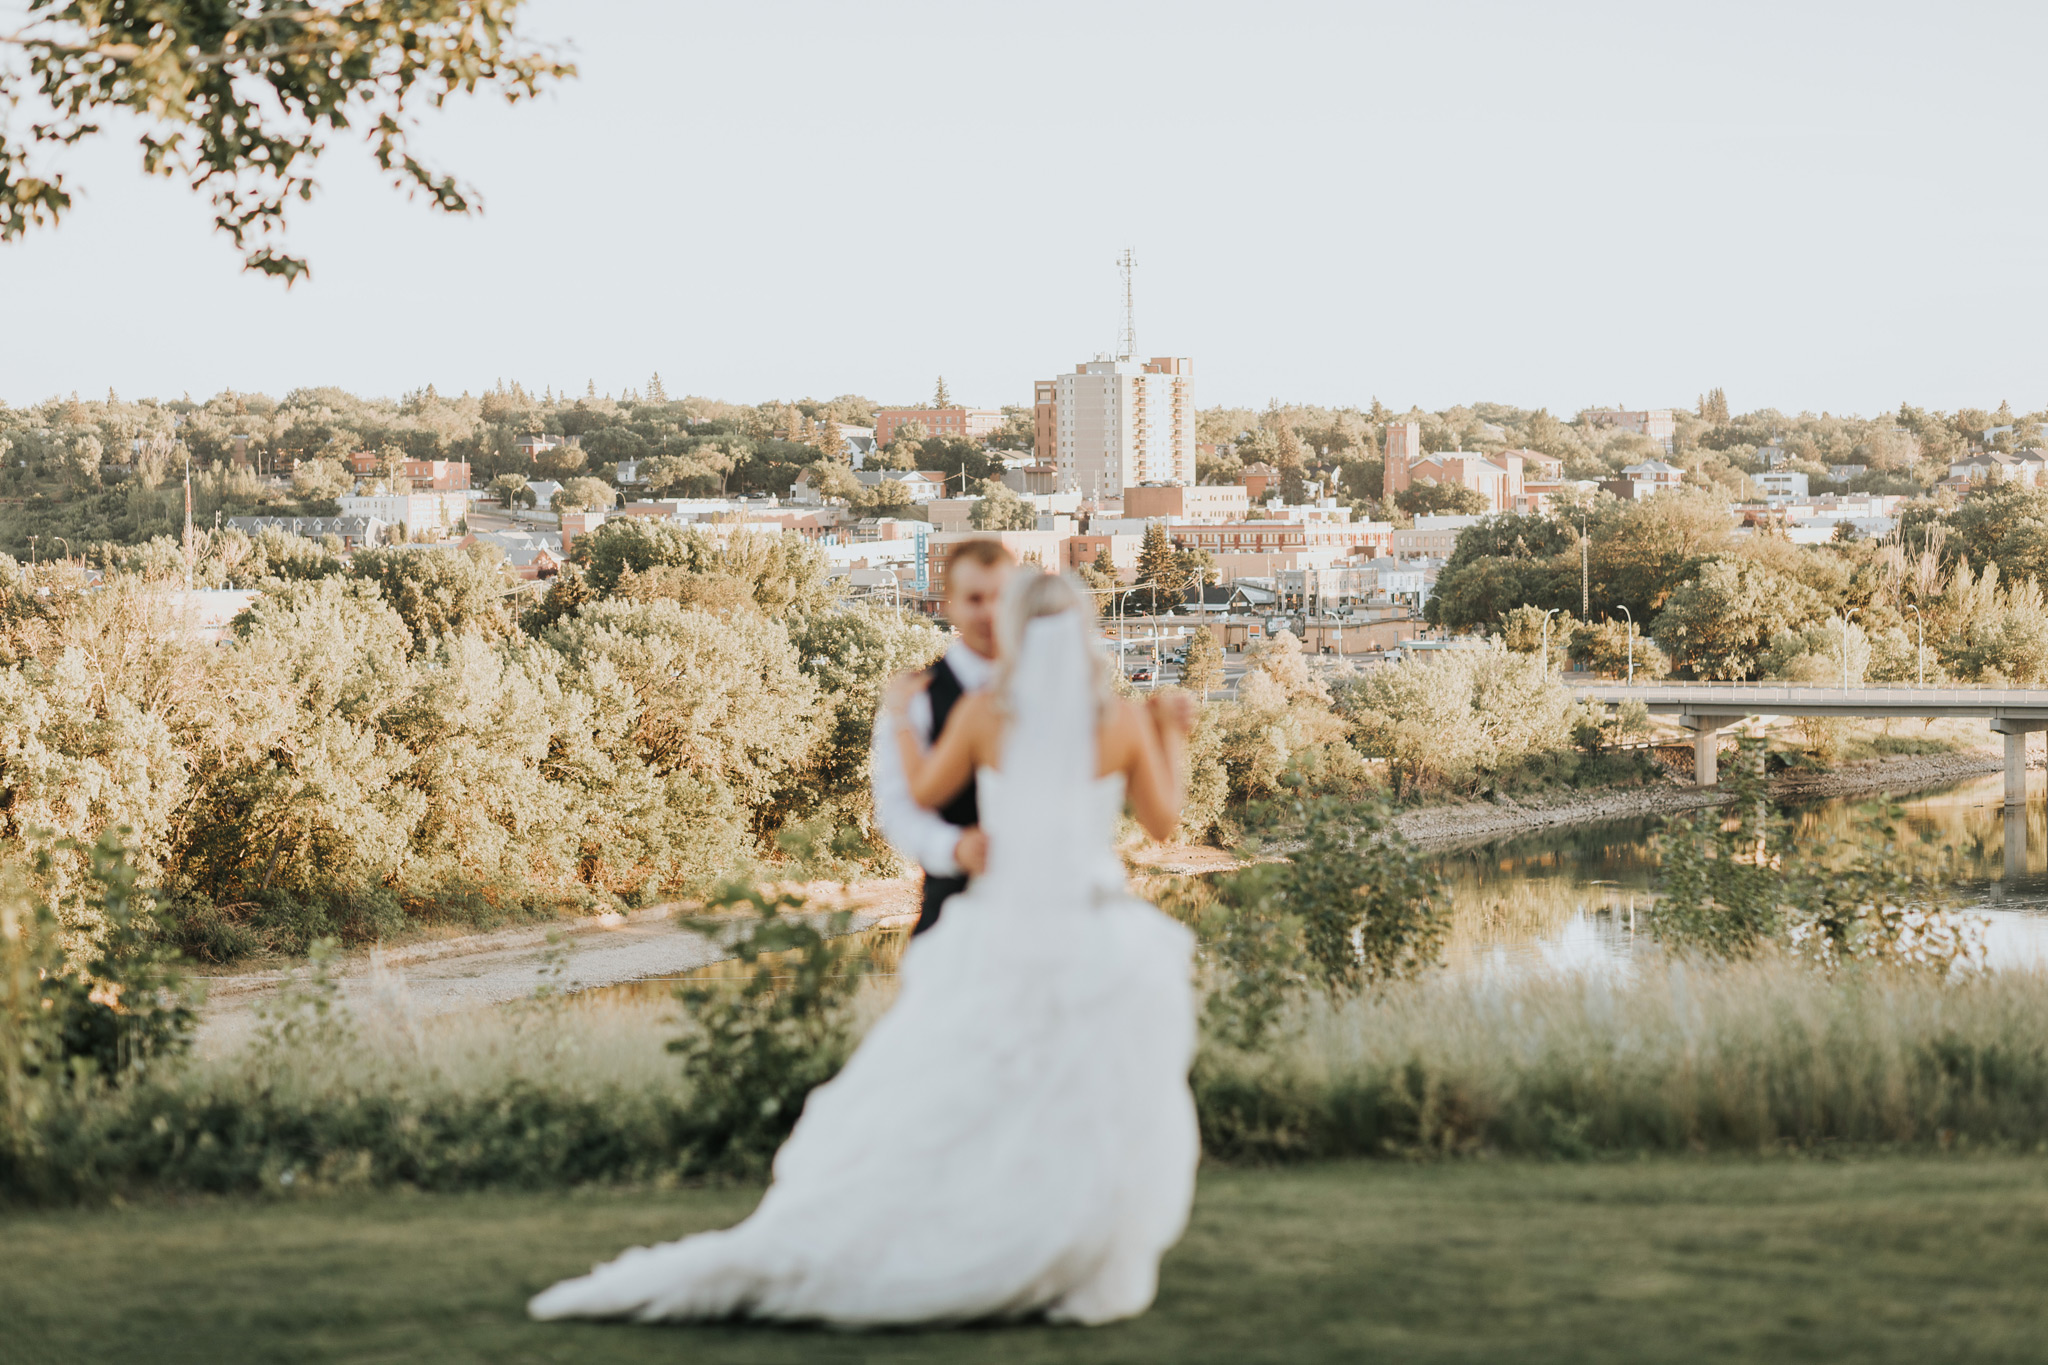 married couple practicing their first dance looking over the city skyline medicine hat alberta